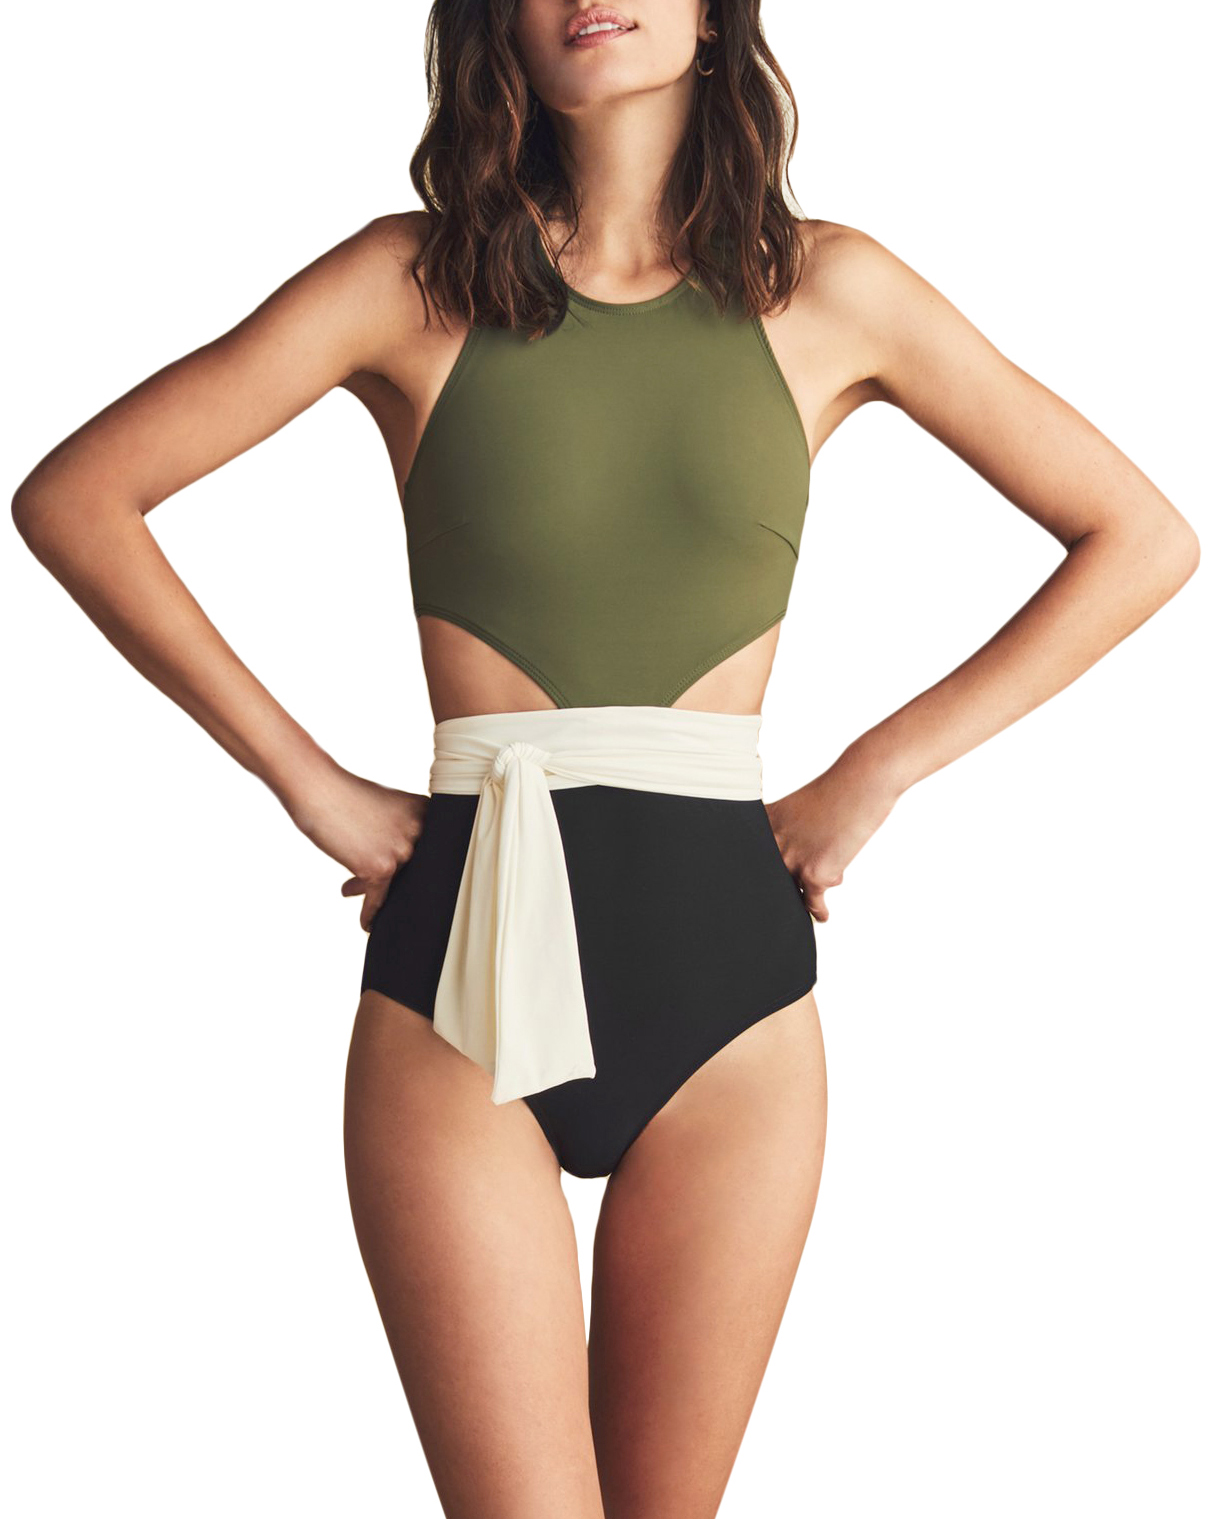 Flagpole Lynn With Sash one-piece cutout bathing suit